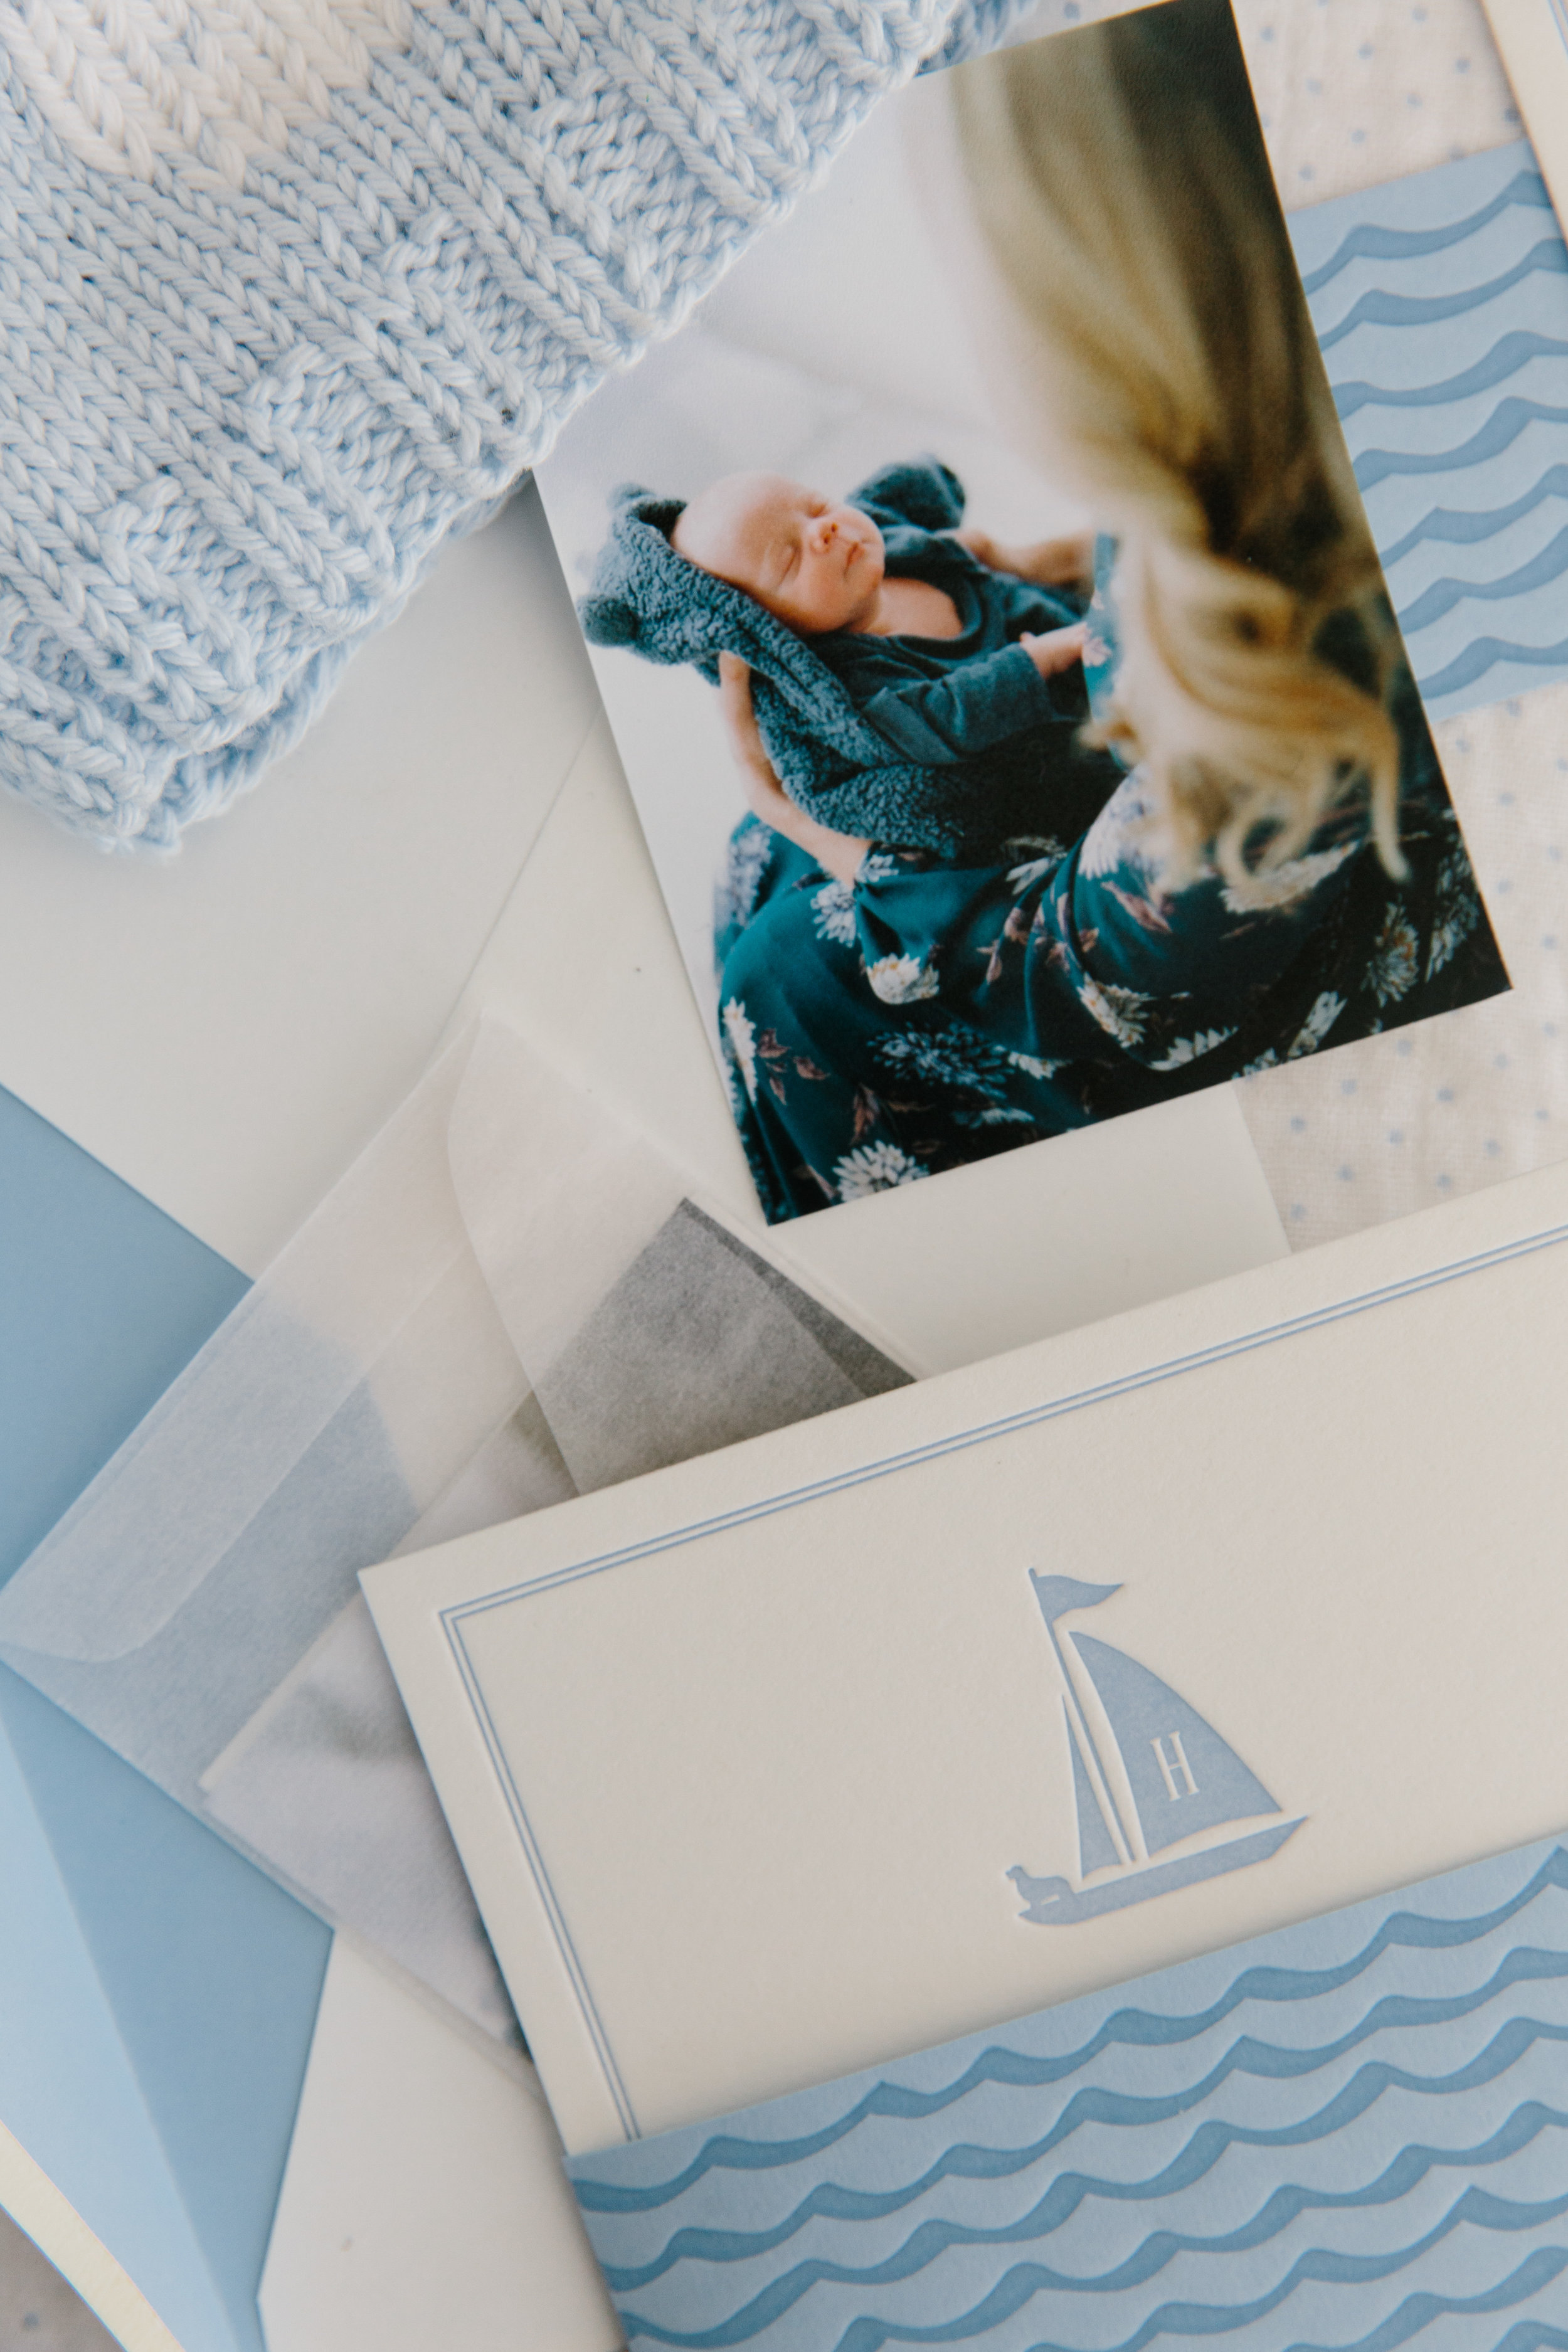 Classic Nautical New England Boy Birth Announcement from Abby Capalbo by Papermoss | Photography: Erin McGinn